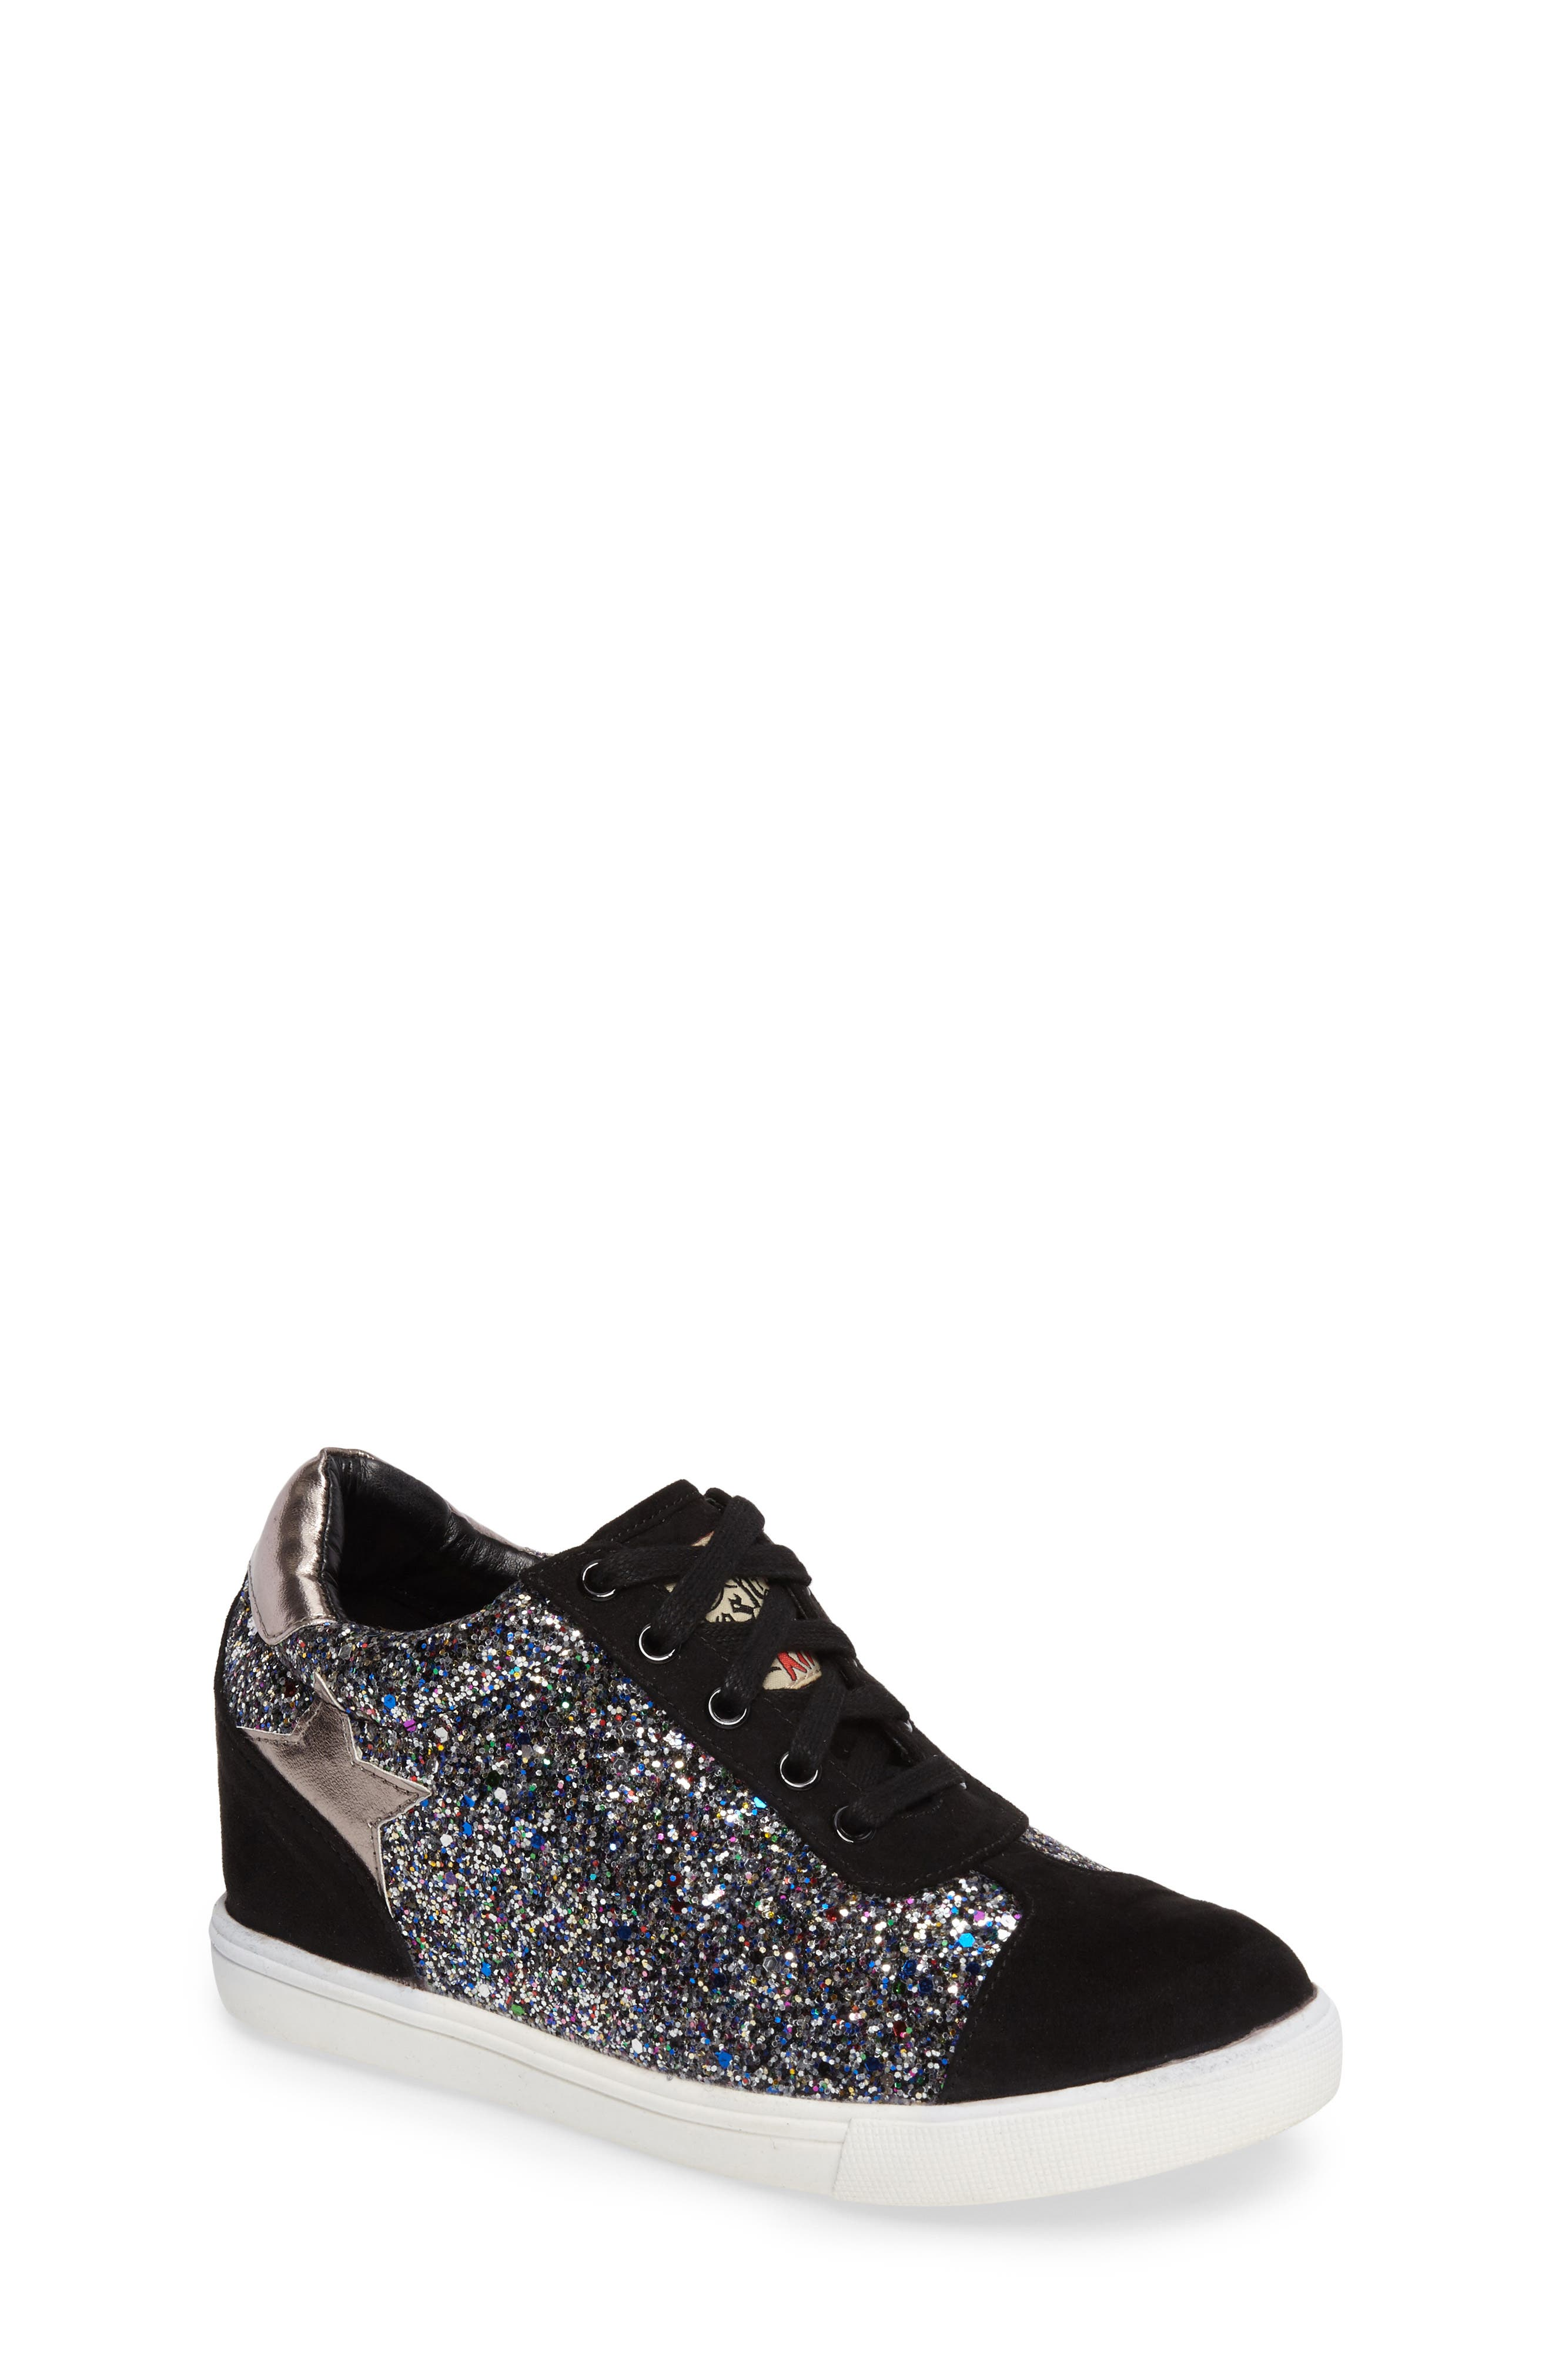 Ash Low Star Glittery Concealed Wedge Sneaker (Toddler, Little Kid & Big Kid)